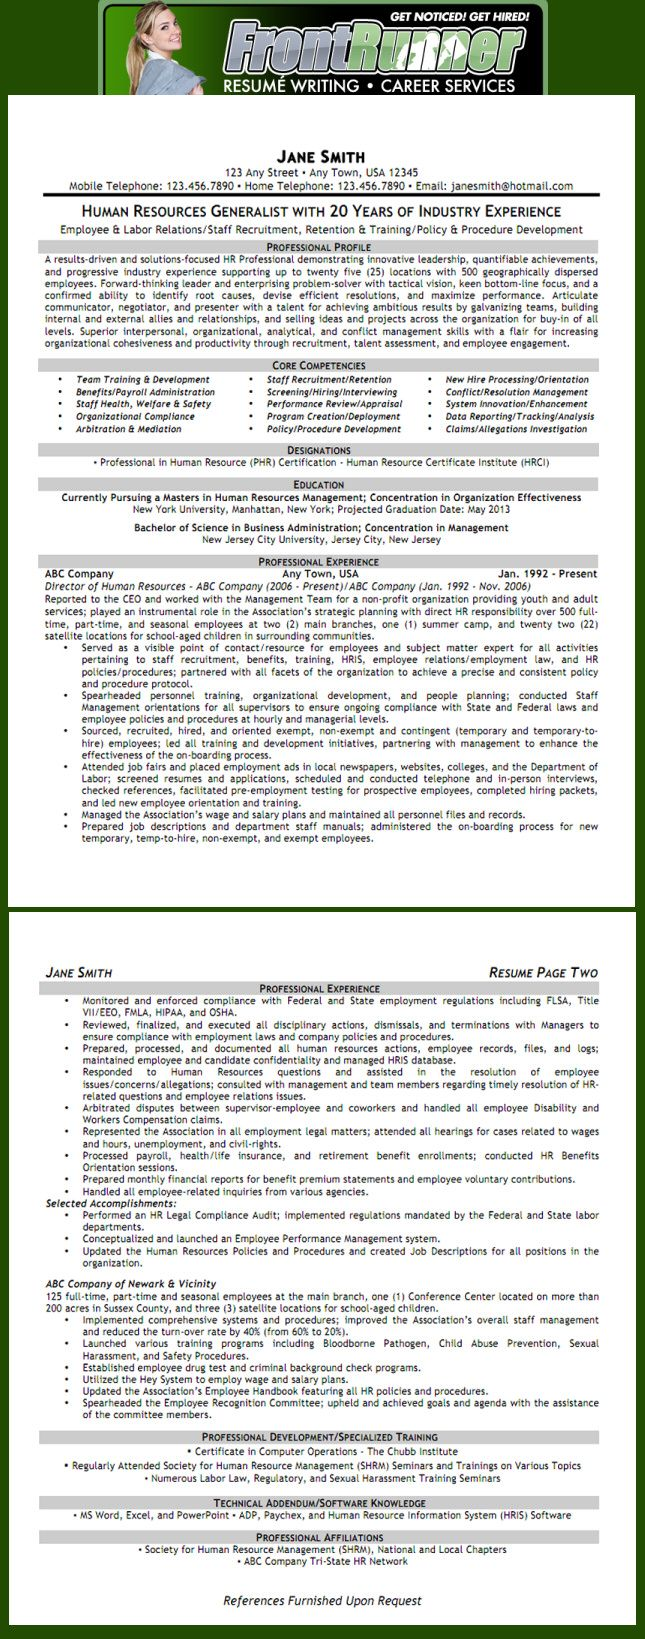 Resume - Human Resources Generalist | professional resume ...